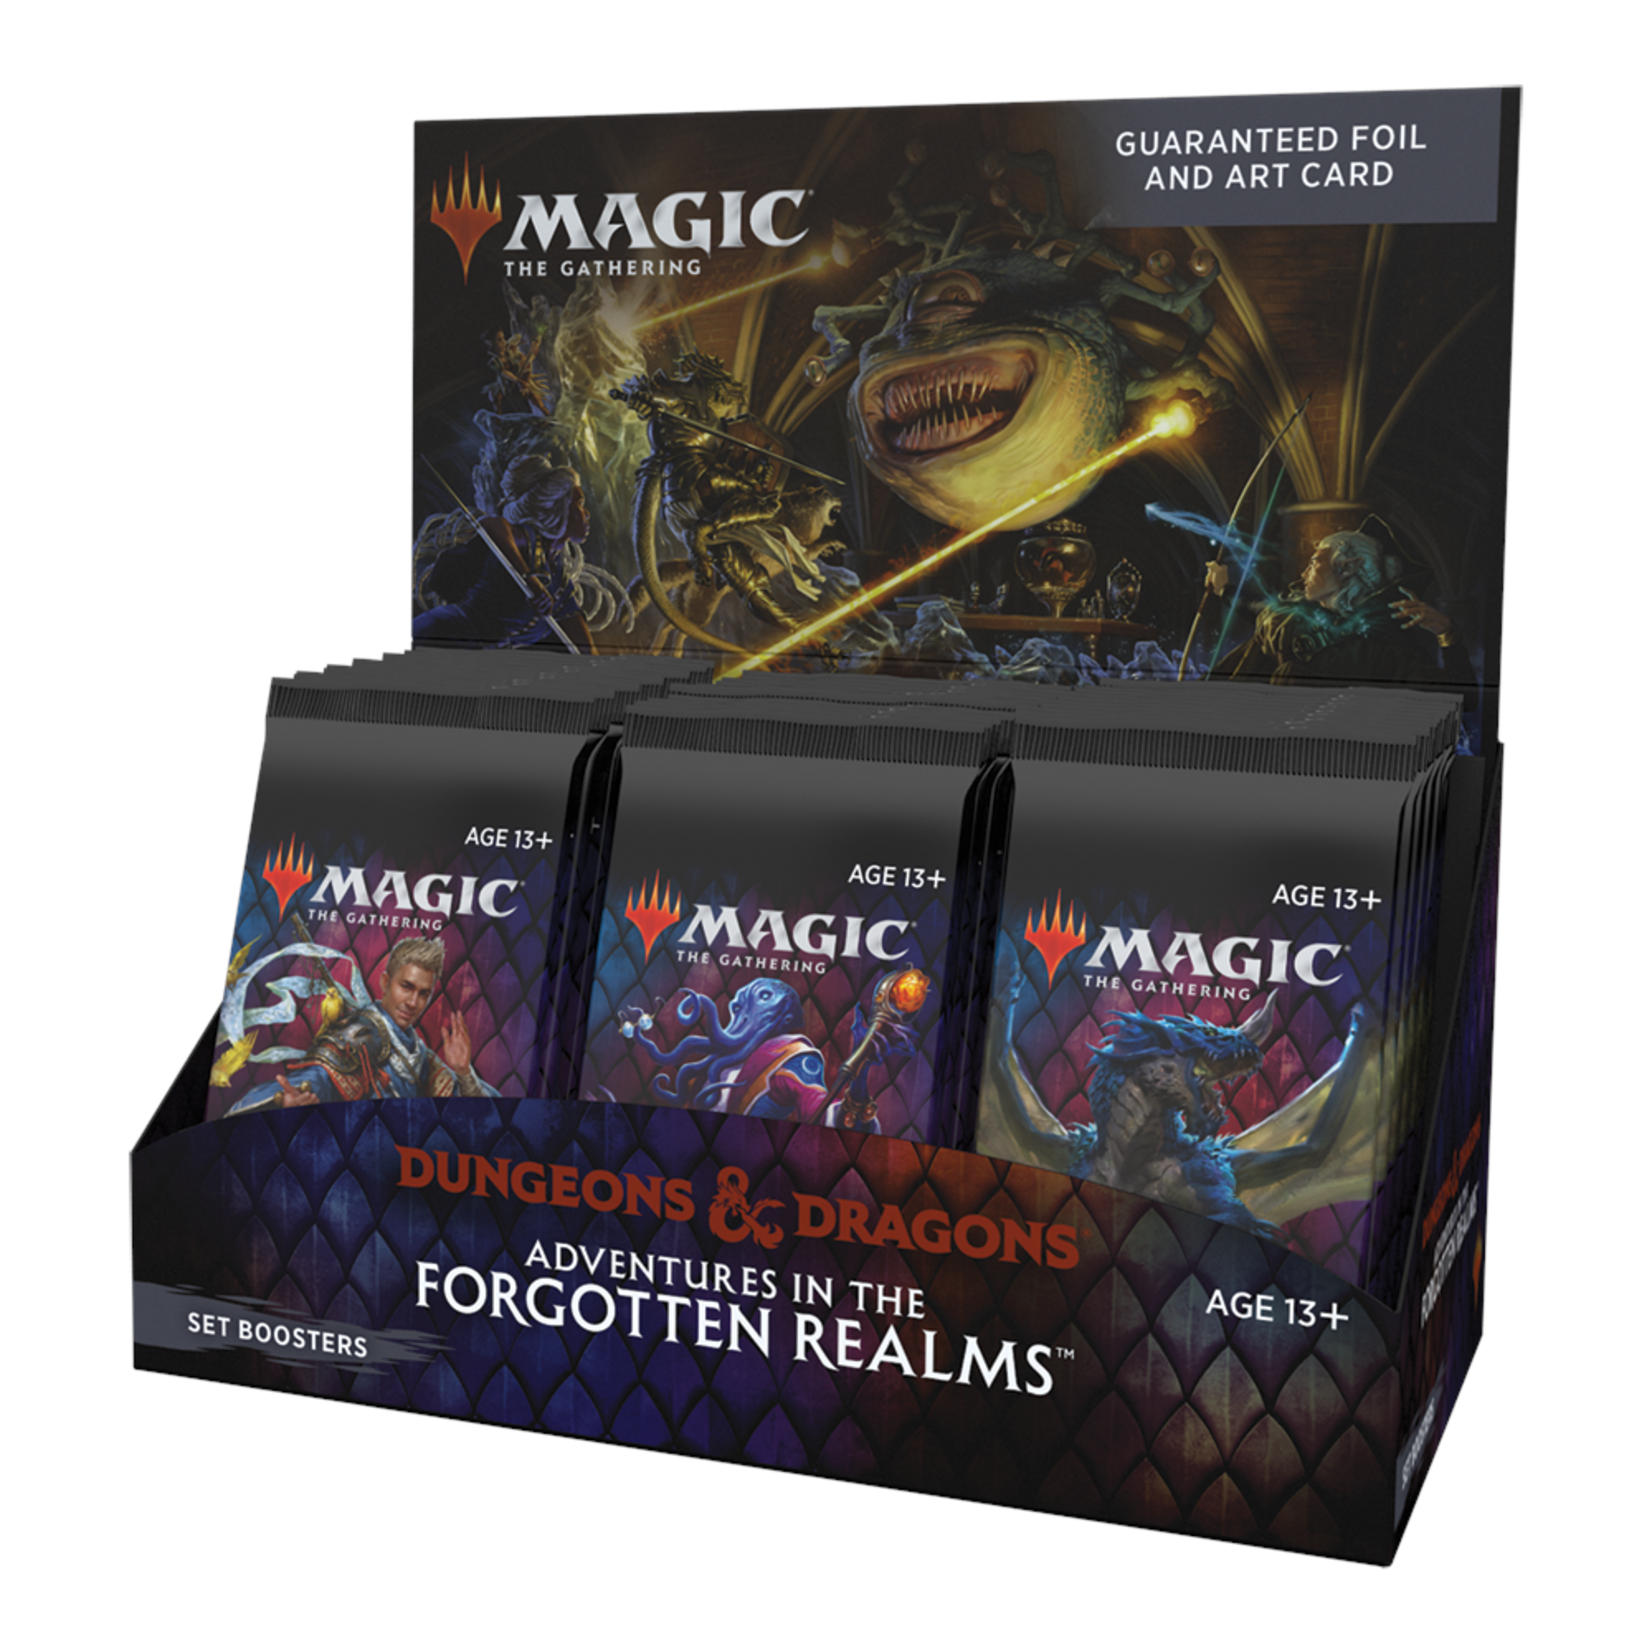 Wizards of the Coast Magic the Gathering: Dungeons & Dragons: Adventures in the Forgotten Realms - Set Booster Box